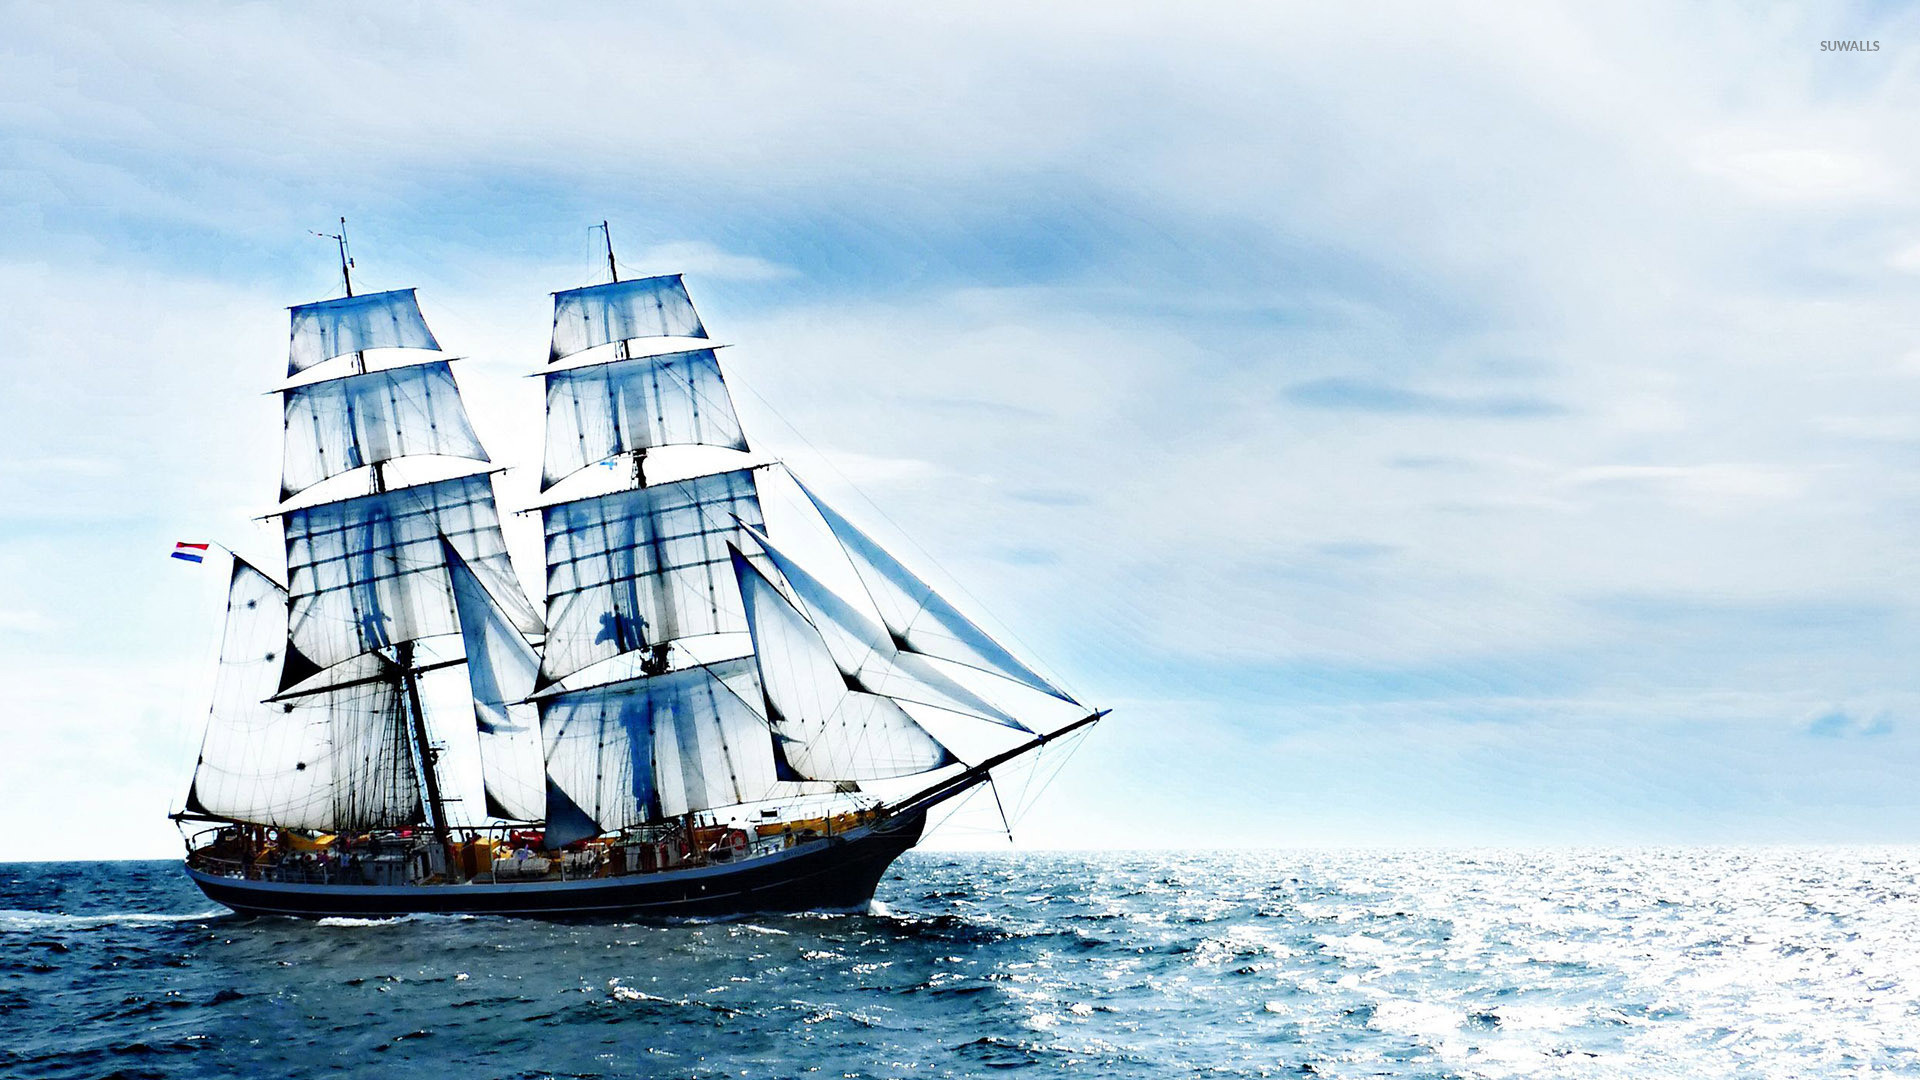 1920x1080 Sailing ship on the sea wallpaper